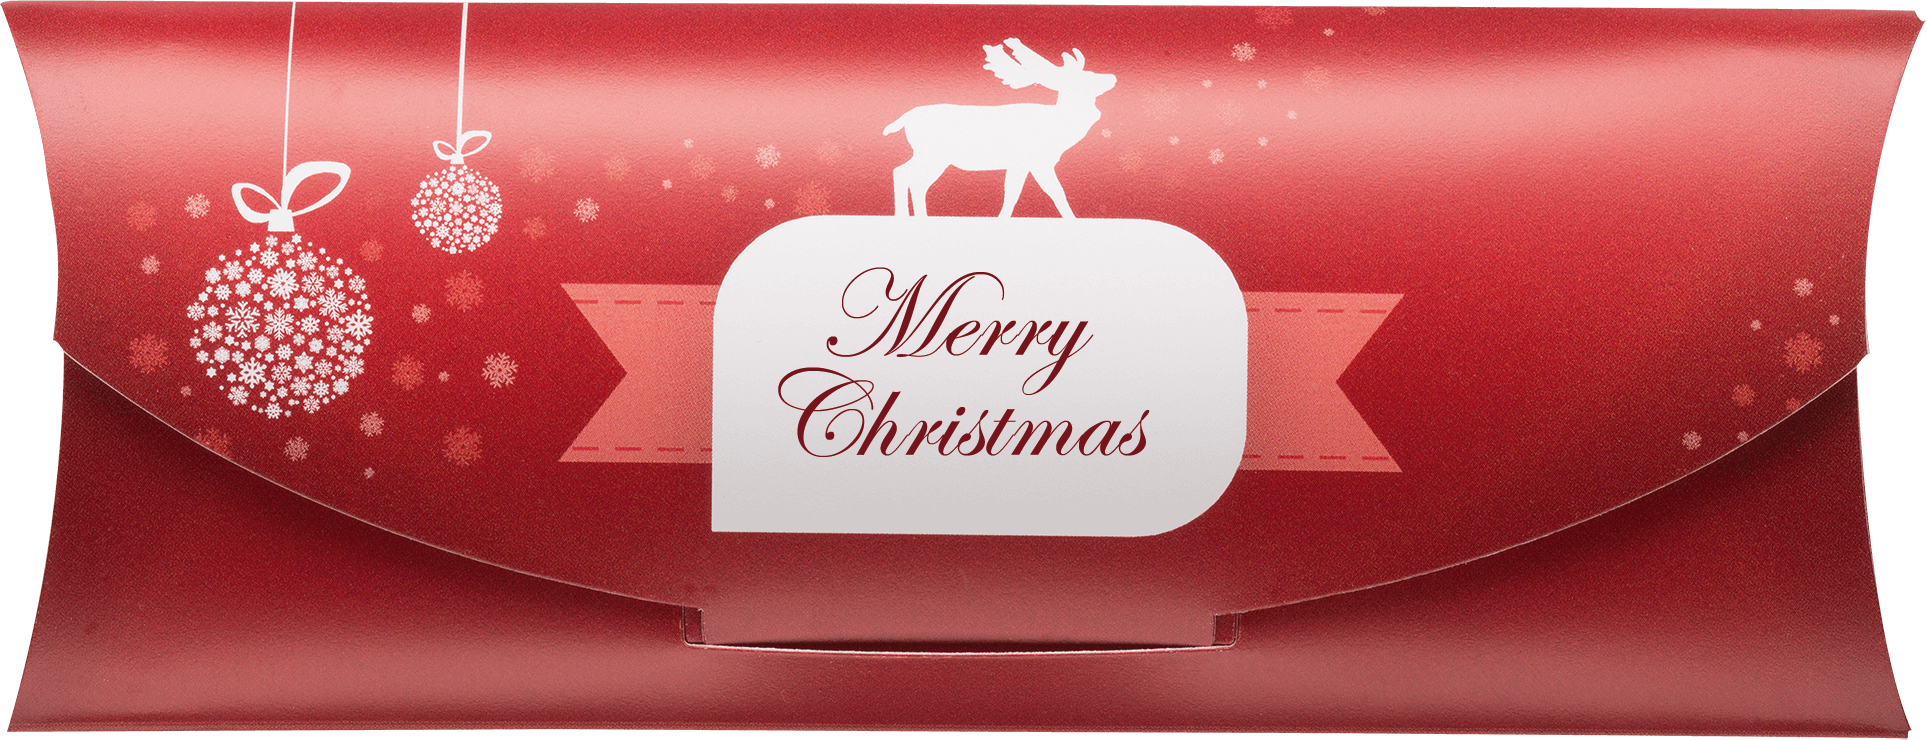 STABILO_GIFT_BOX_Christmas_Front_WithText_OriginalSize_sRGB_300dpi